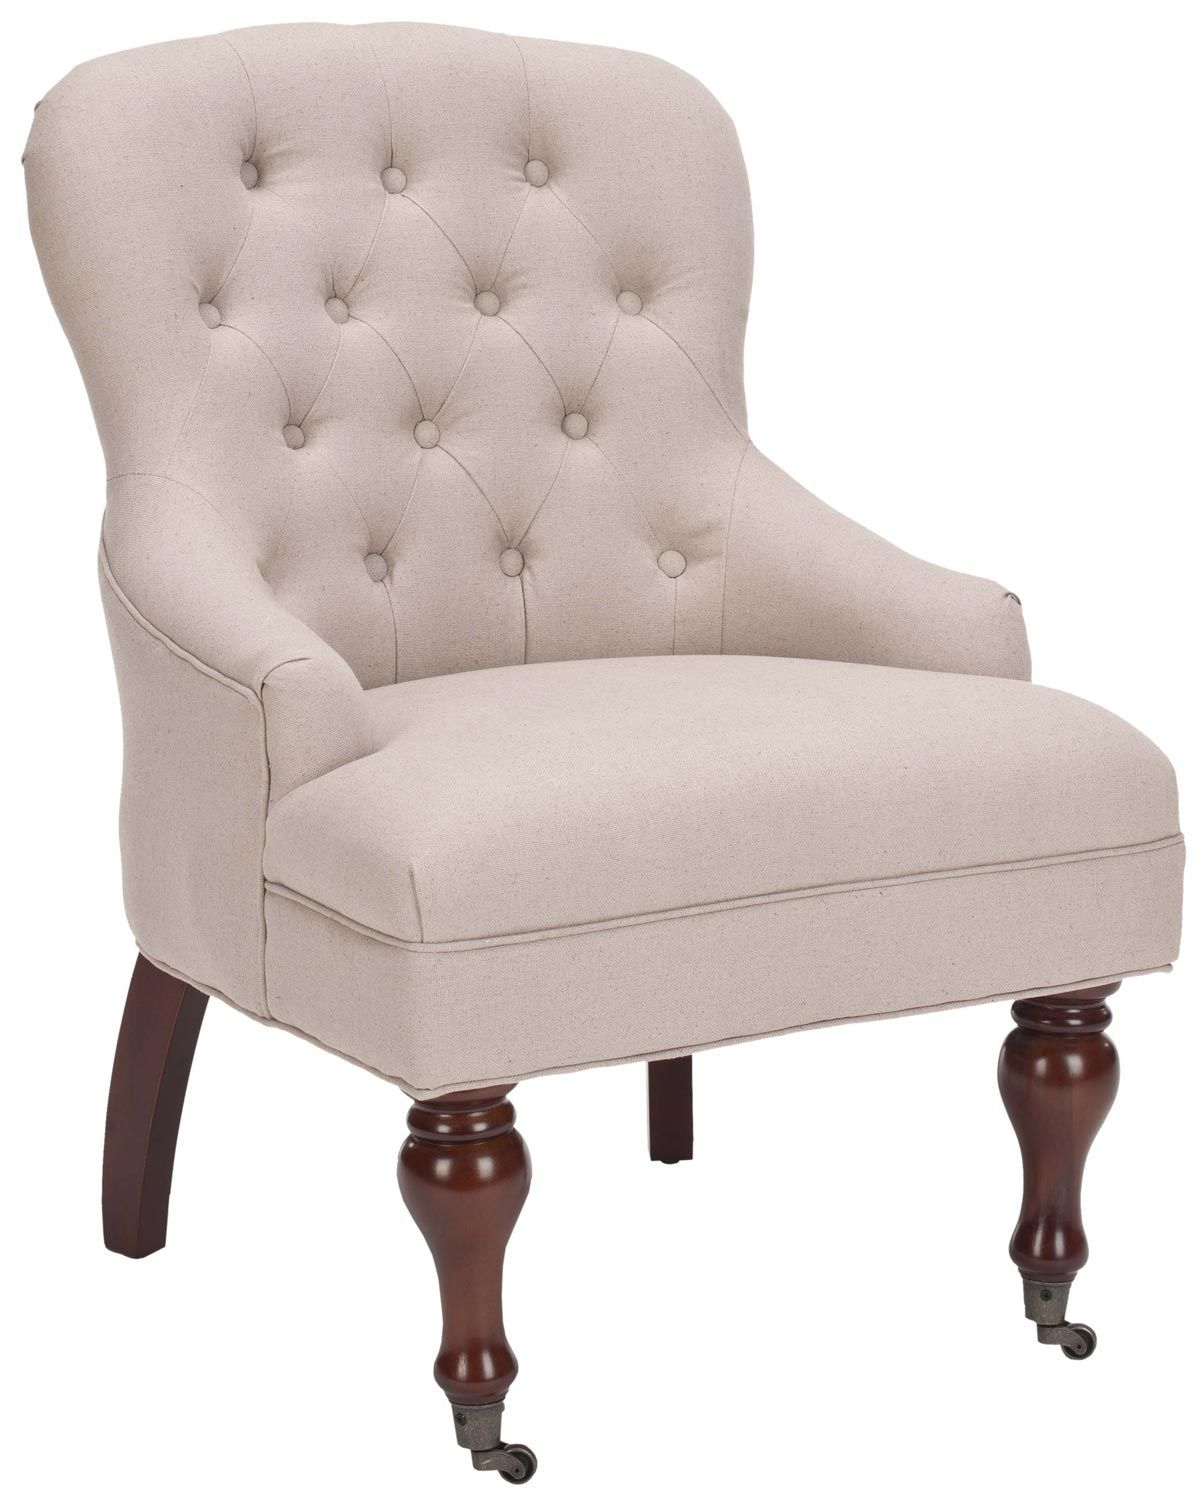 Cheap Accent Chairs Canada Safavieh Tufted Accent Chair Taupe Poltronas Pinterest